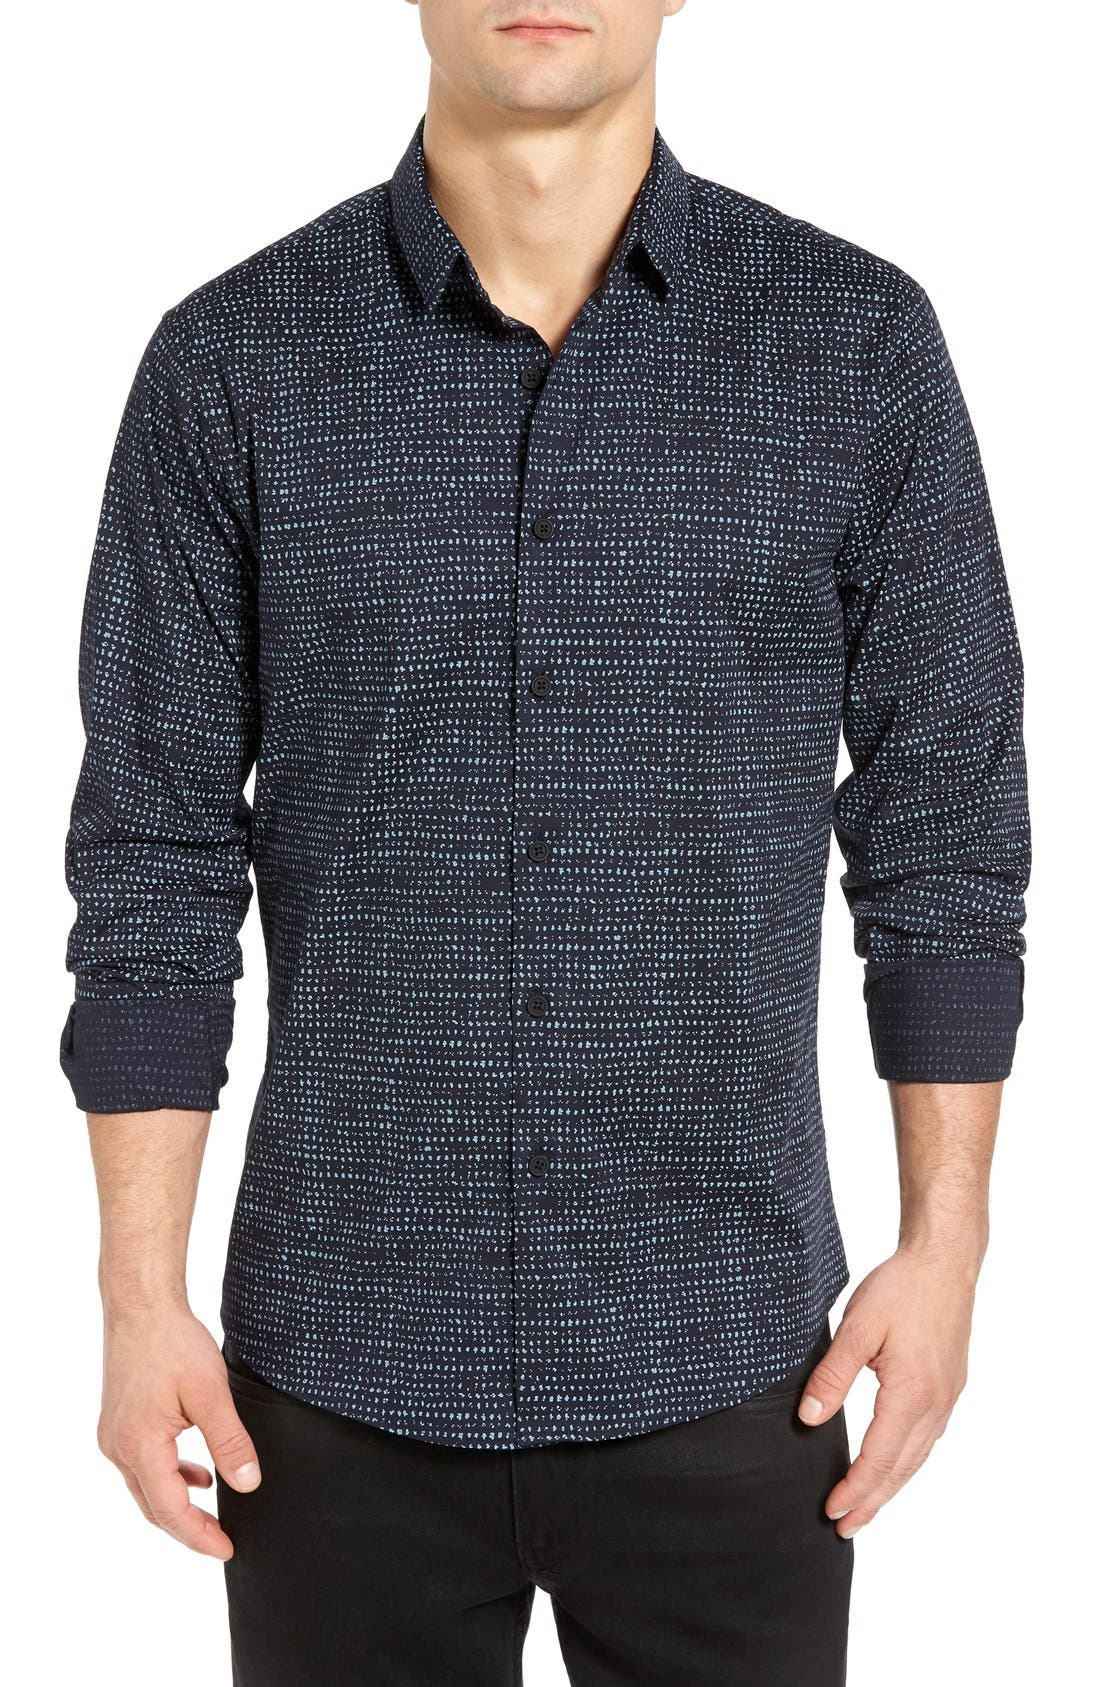 Main Image - 7 Diamonds Rear View Slim Fit Woven Shirt